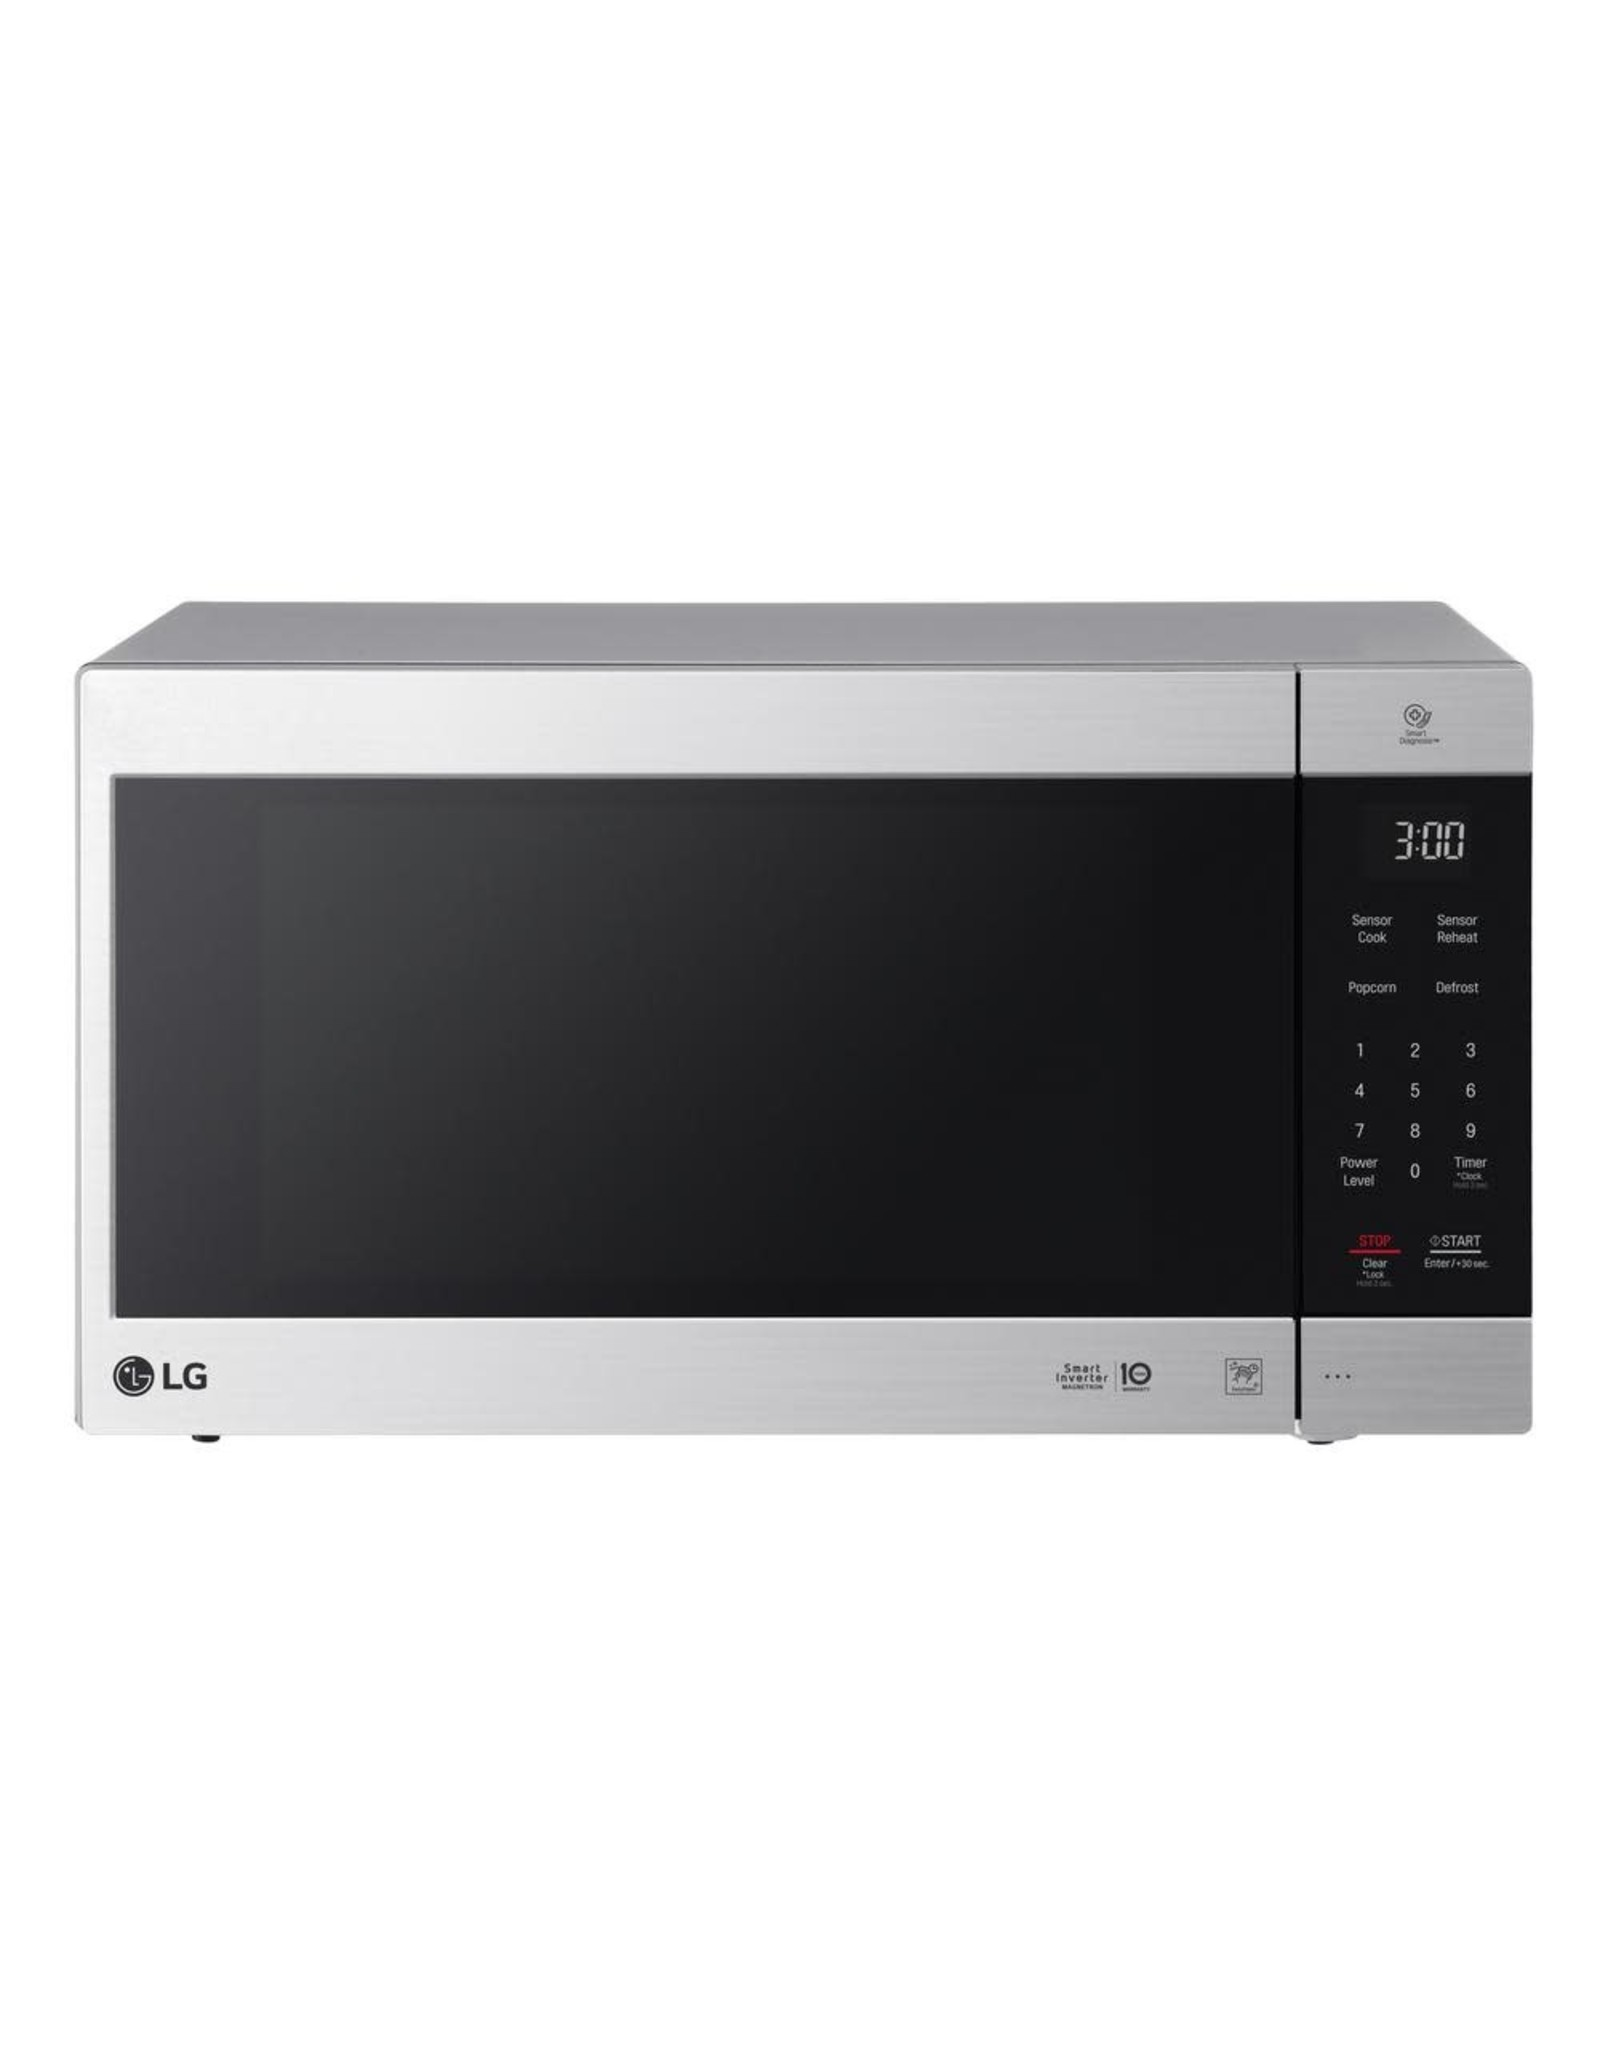 LG Electronics LMC2075ST NeoChef 2.0 cu. ft. Countertop Microwave in Stainless Steel